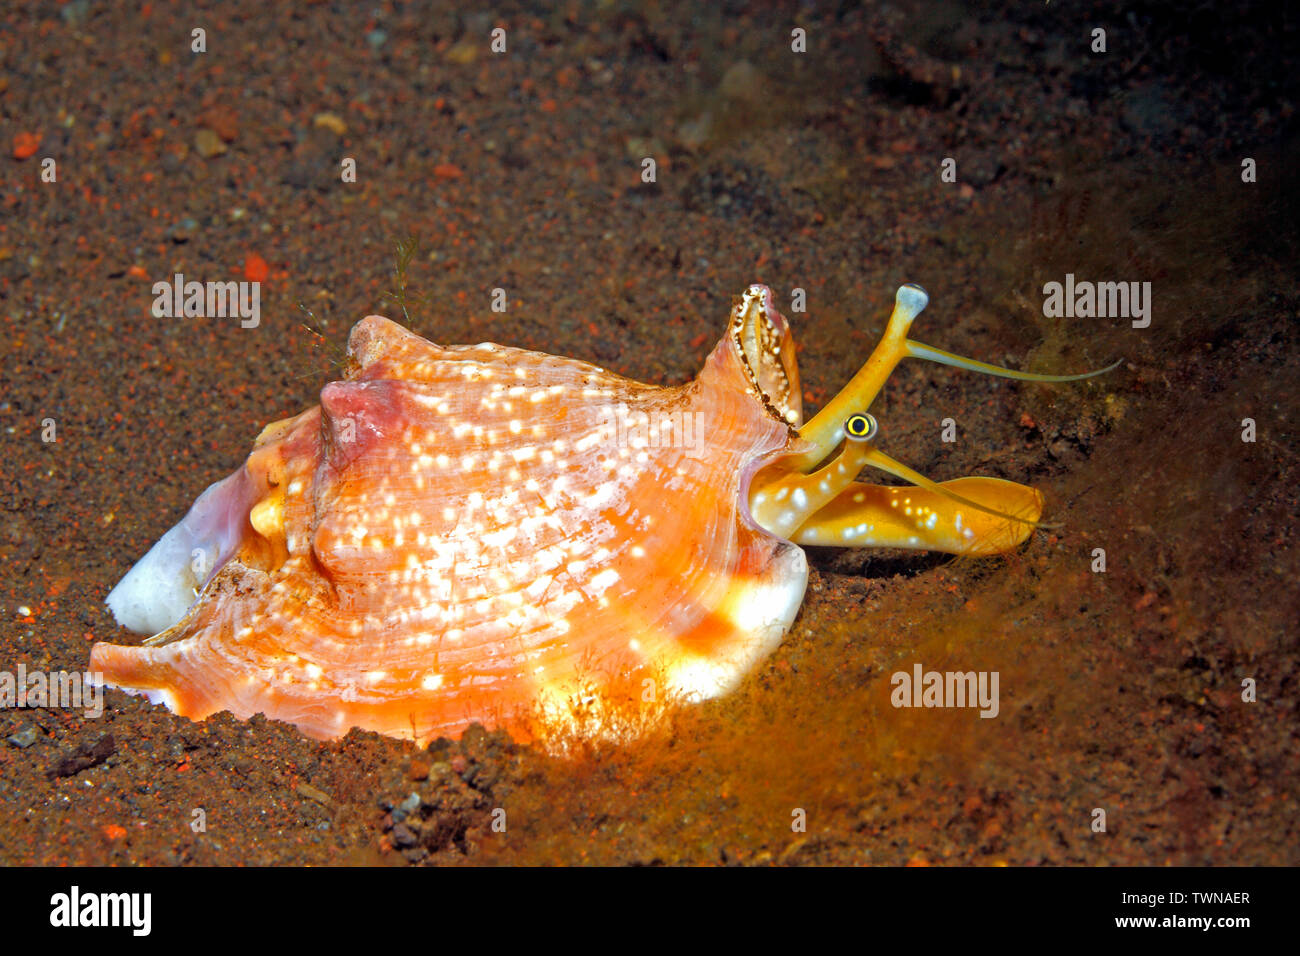 bubble-stromb-or-bubble-conch-euprotomus-bulla-previously-strombus-bulla-and-lambis-bulla-showing-the-eyes-and-radula-tulamben-bali-indonesia-TWNAER.jpg